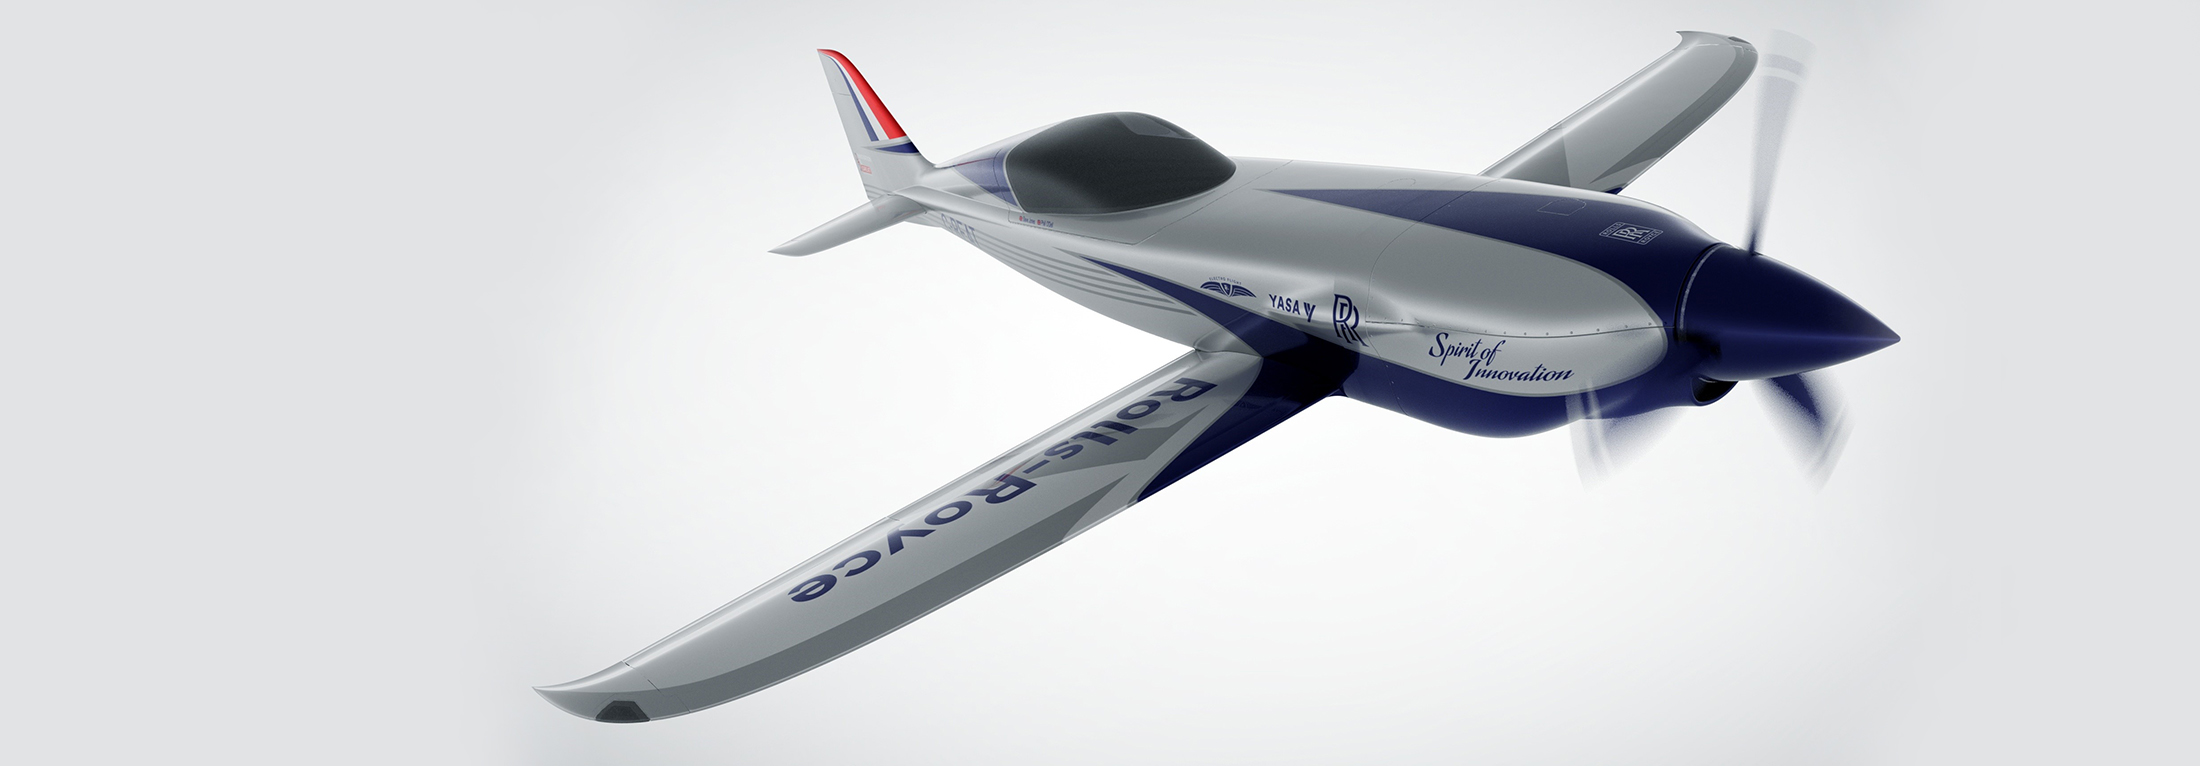 Rolls Royce all-electric aircraft illustration